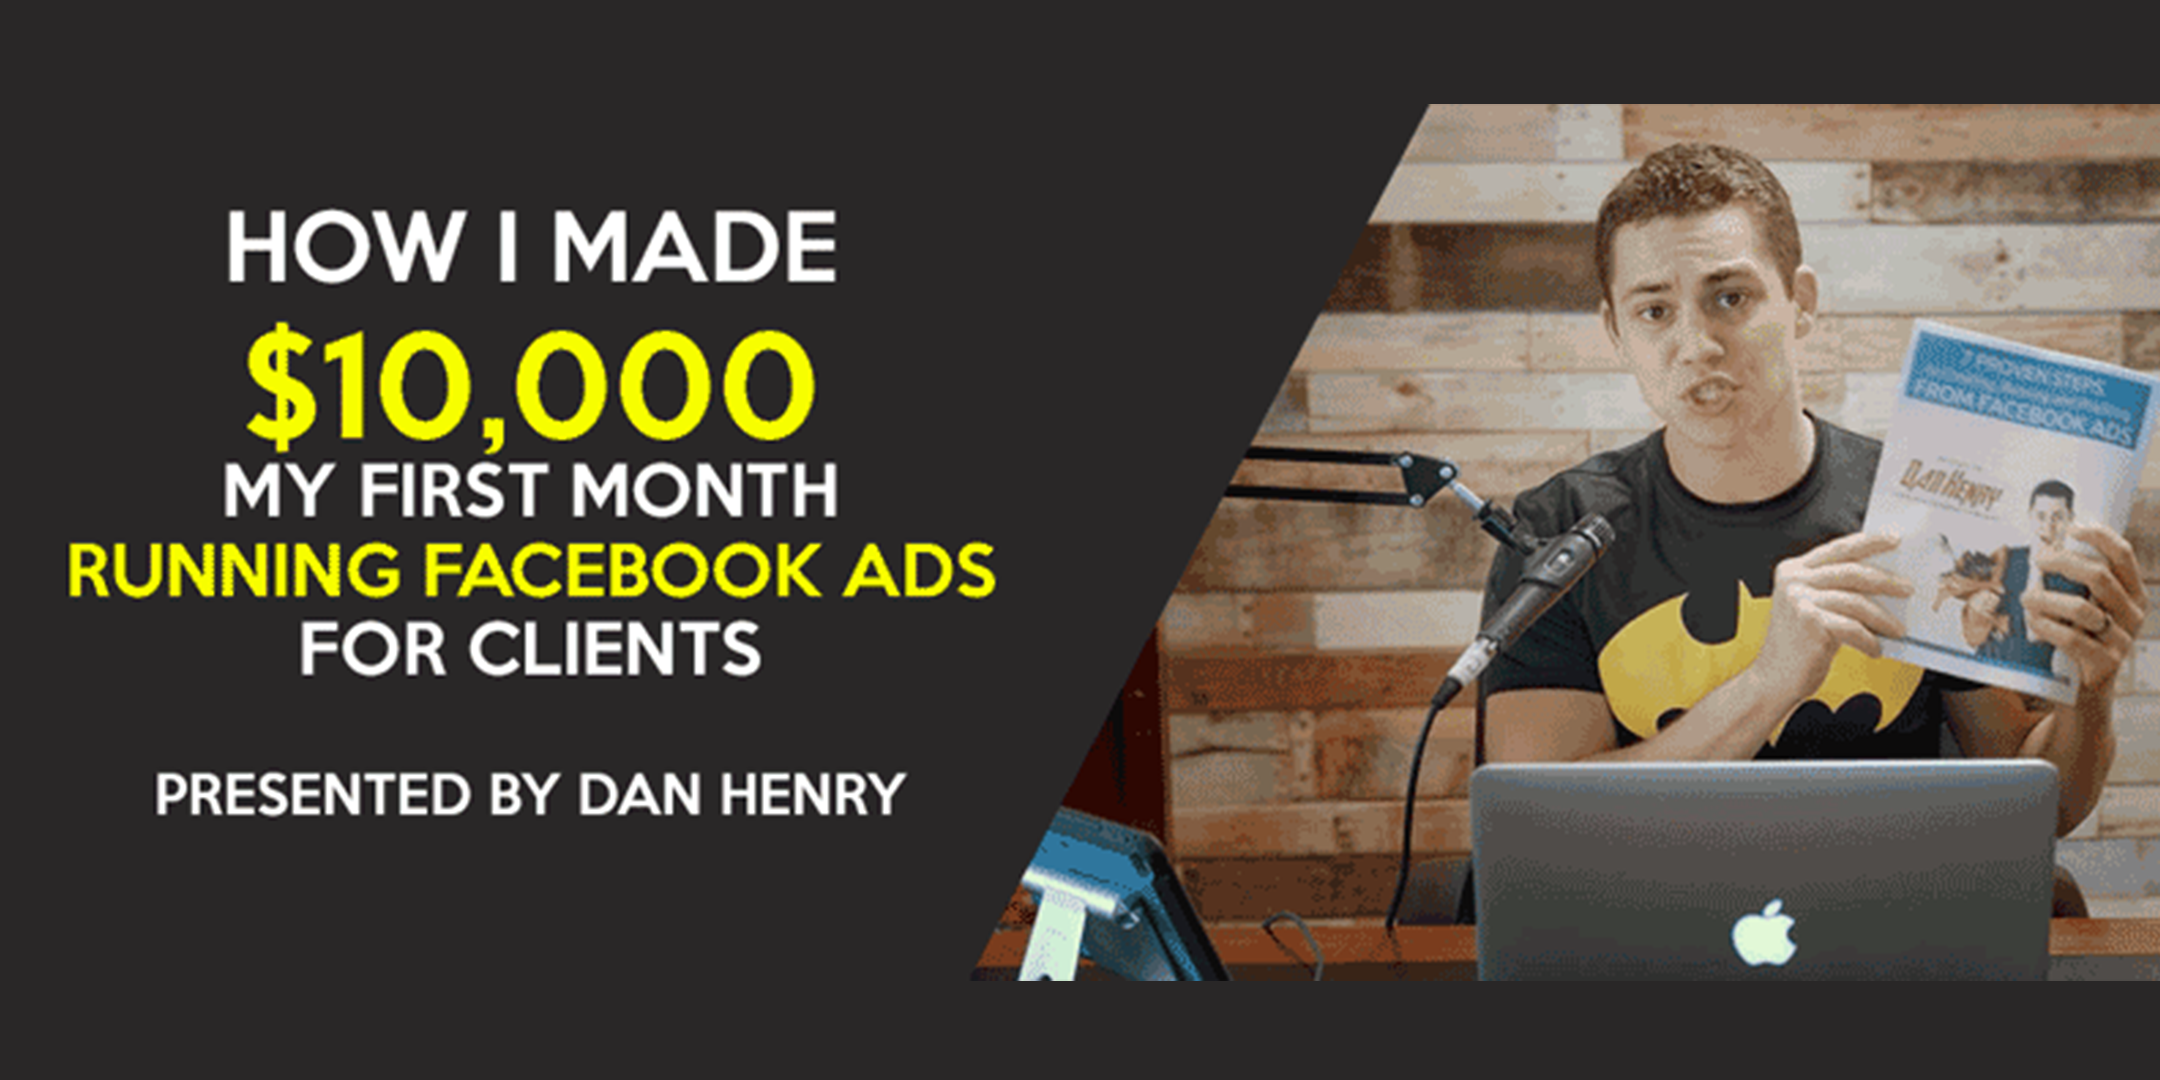 How I Made $10,000 My First Month Running Facebook Ads for Clients & How You Can TOO Even If You Start With ZERO Results!